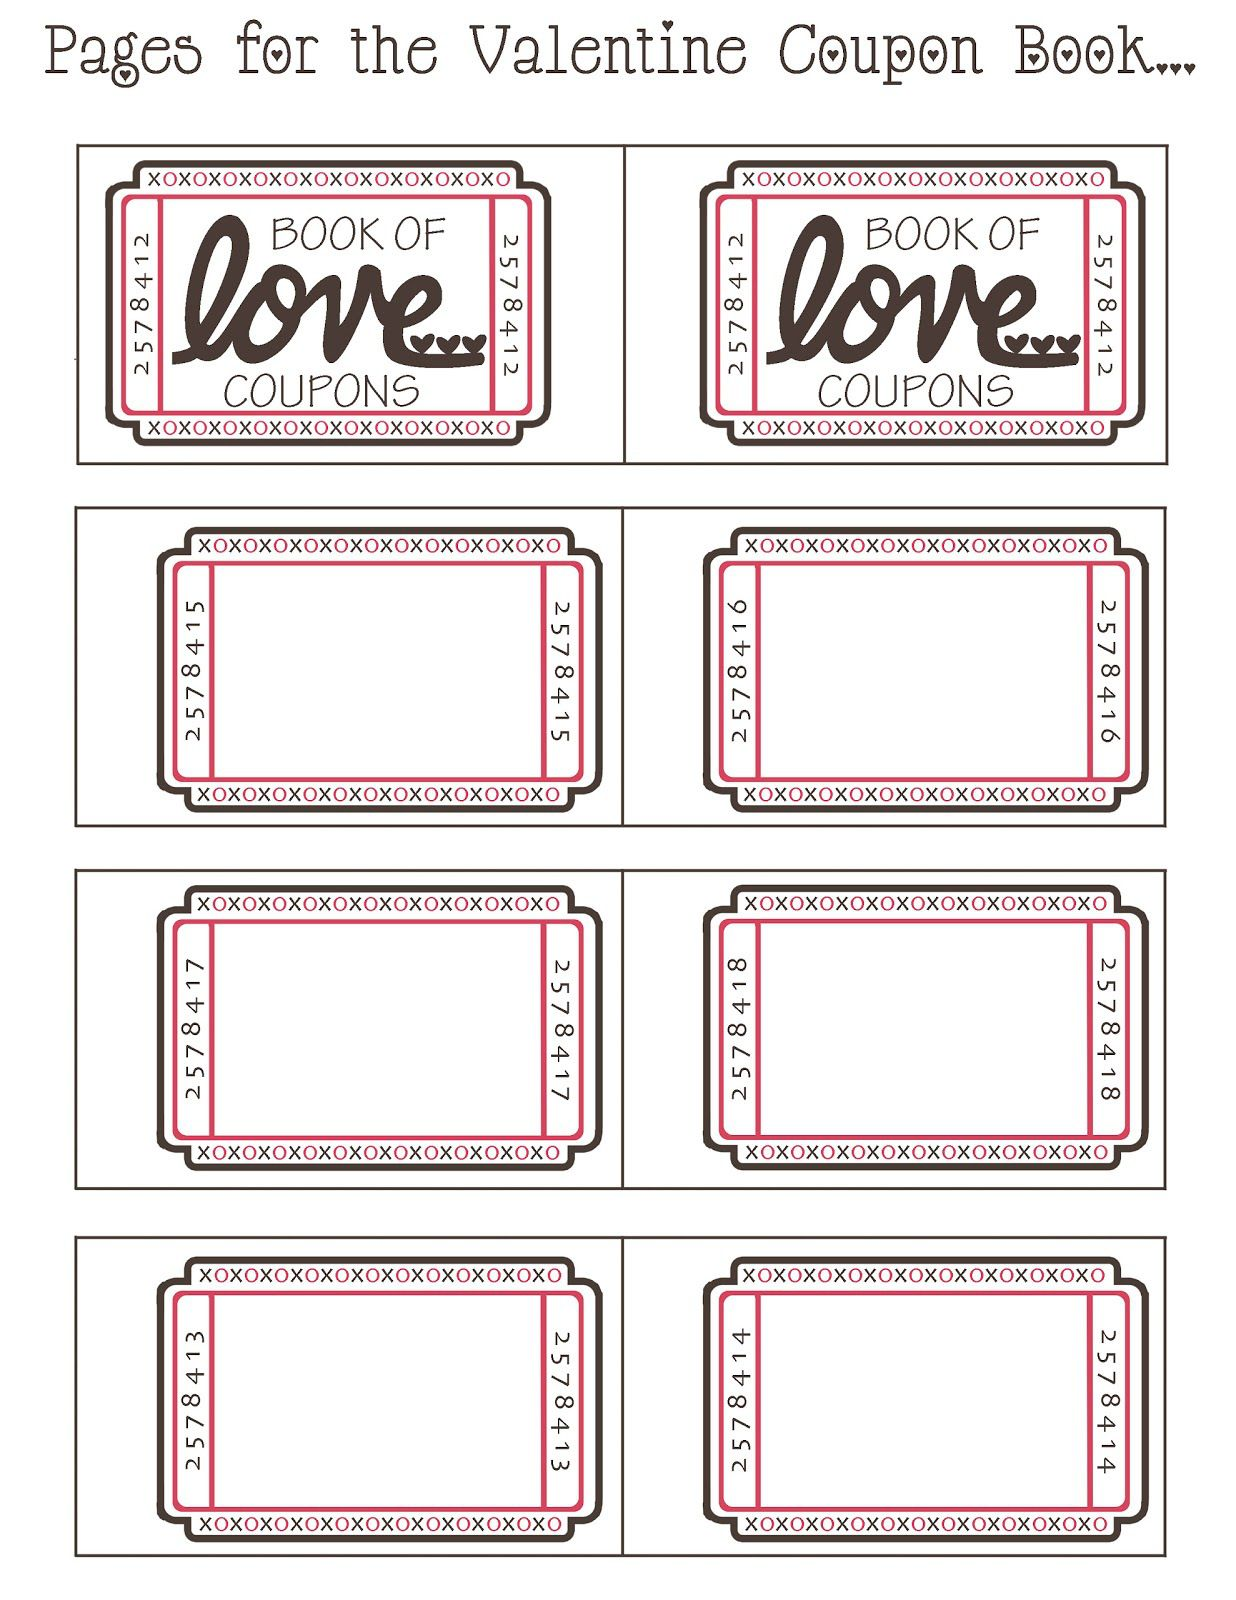 coupon book ideas for husband blank love coupon templates With coupon book for husband template